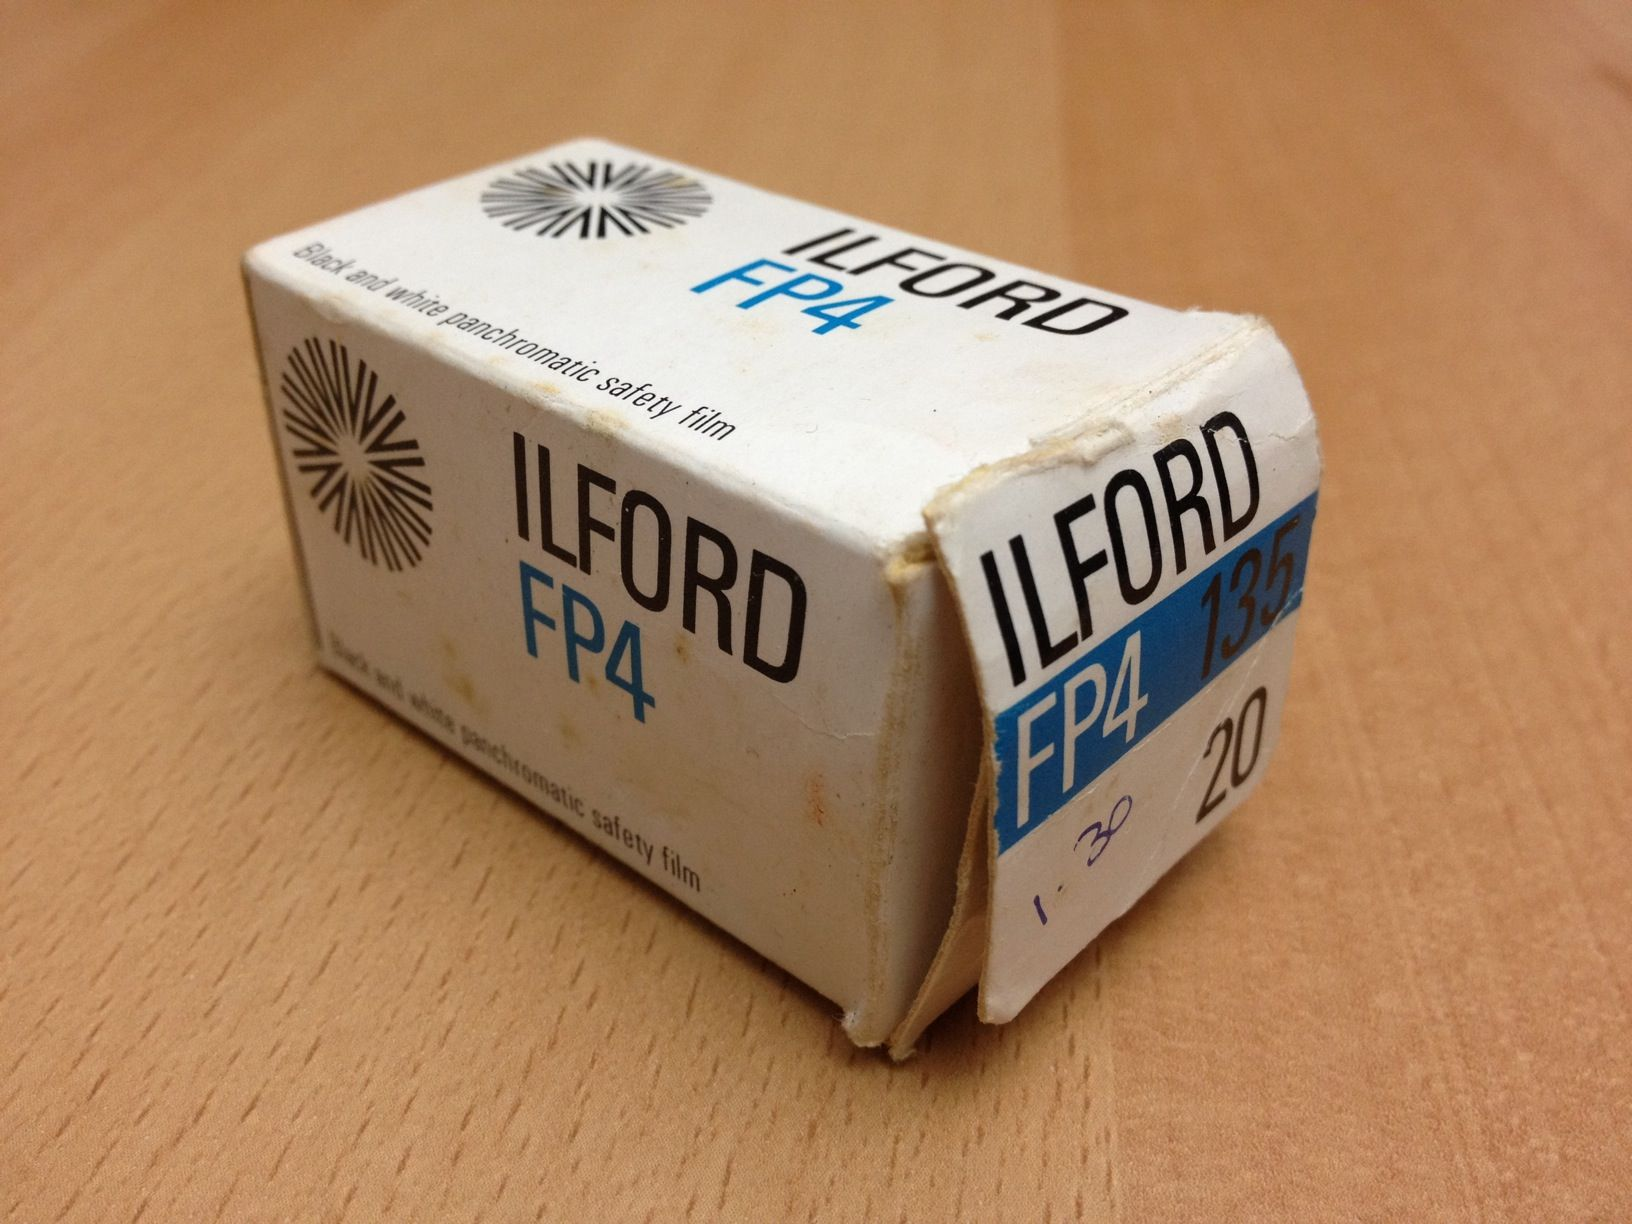 Ilford FP4 box. The expiry date is June, 1979.